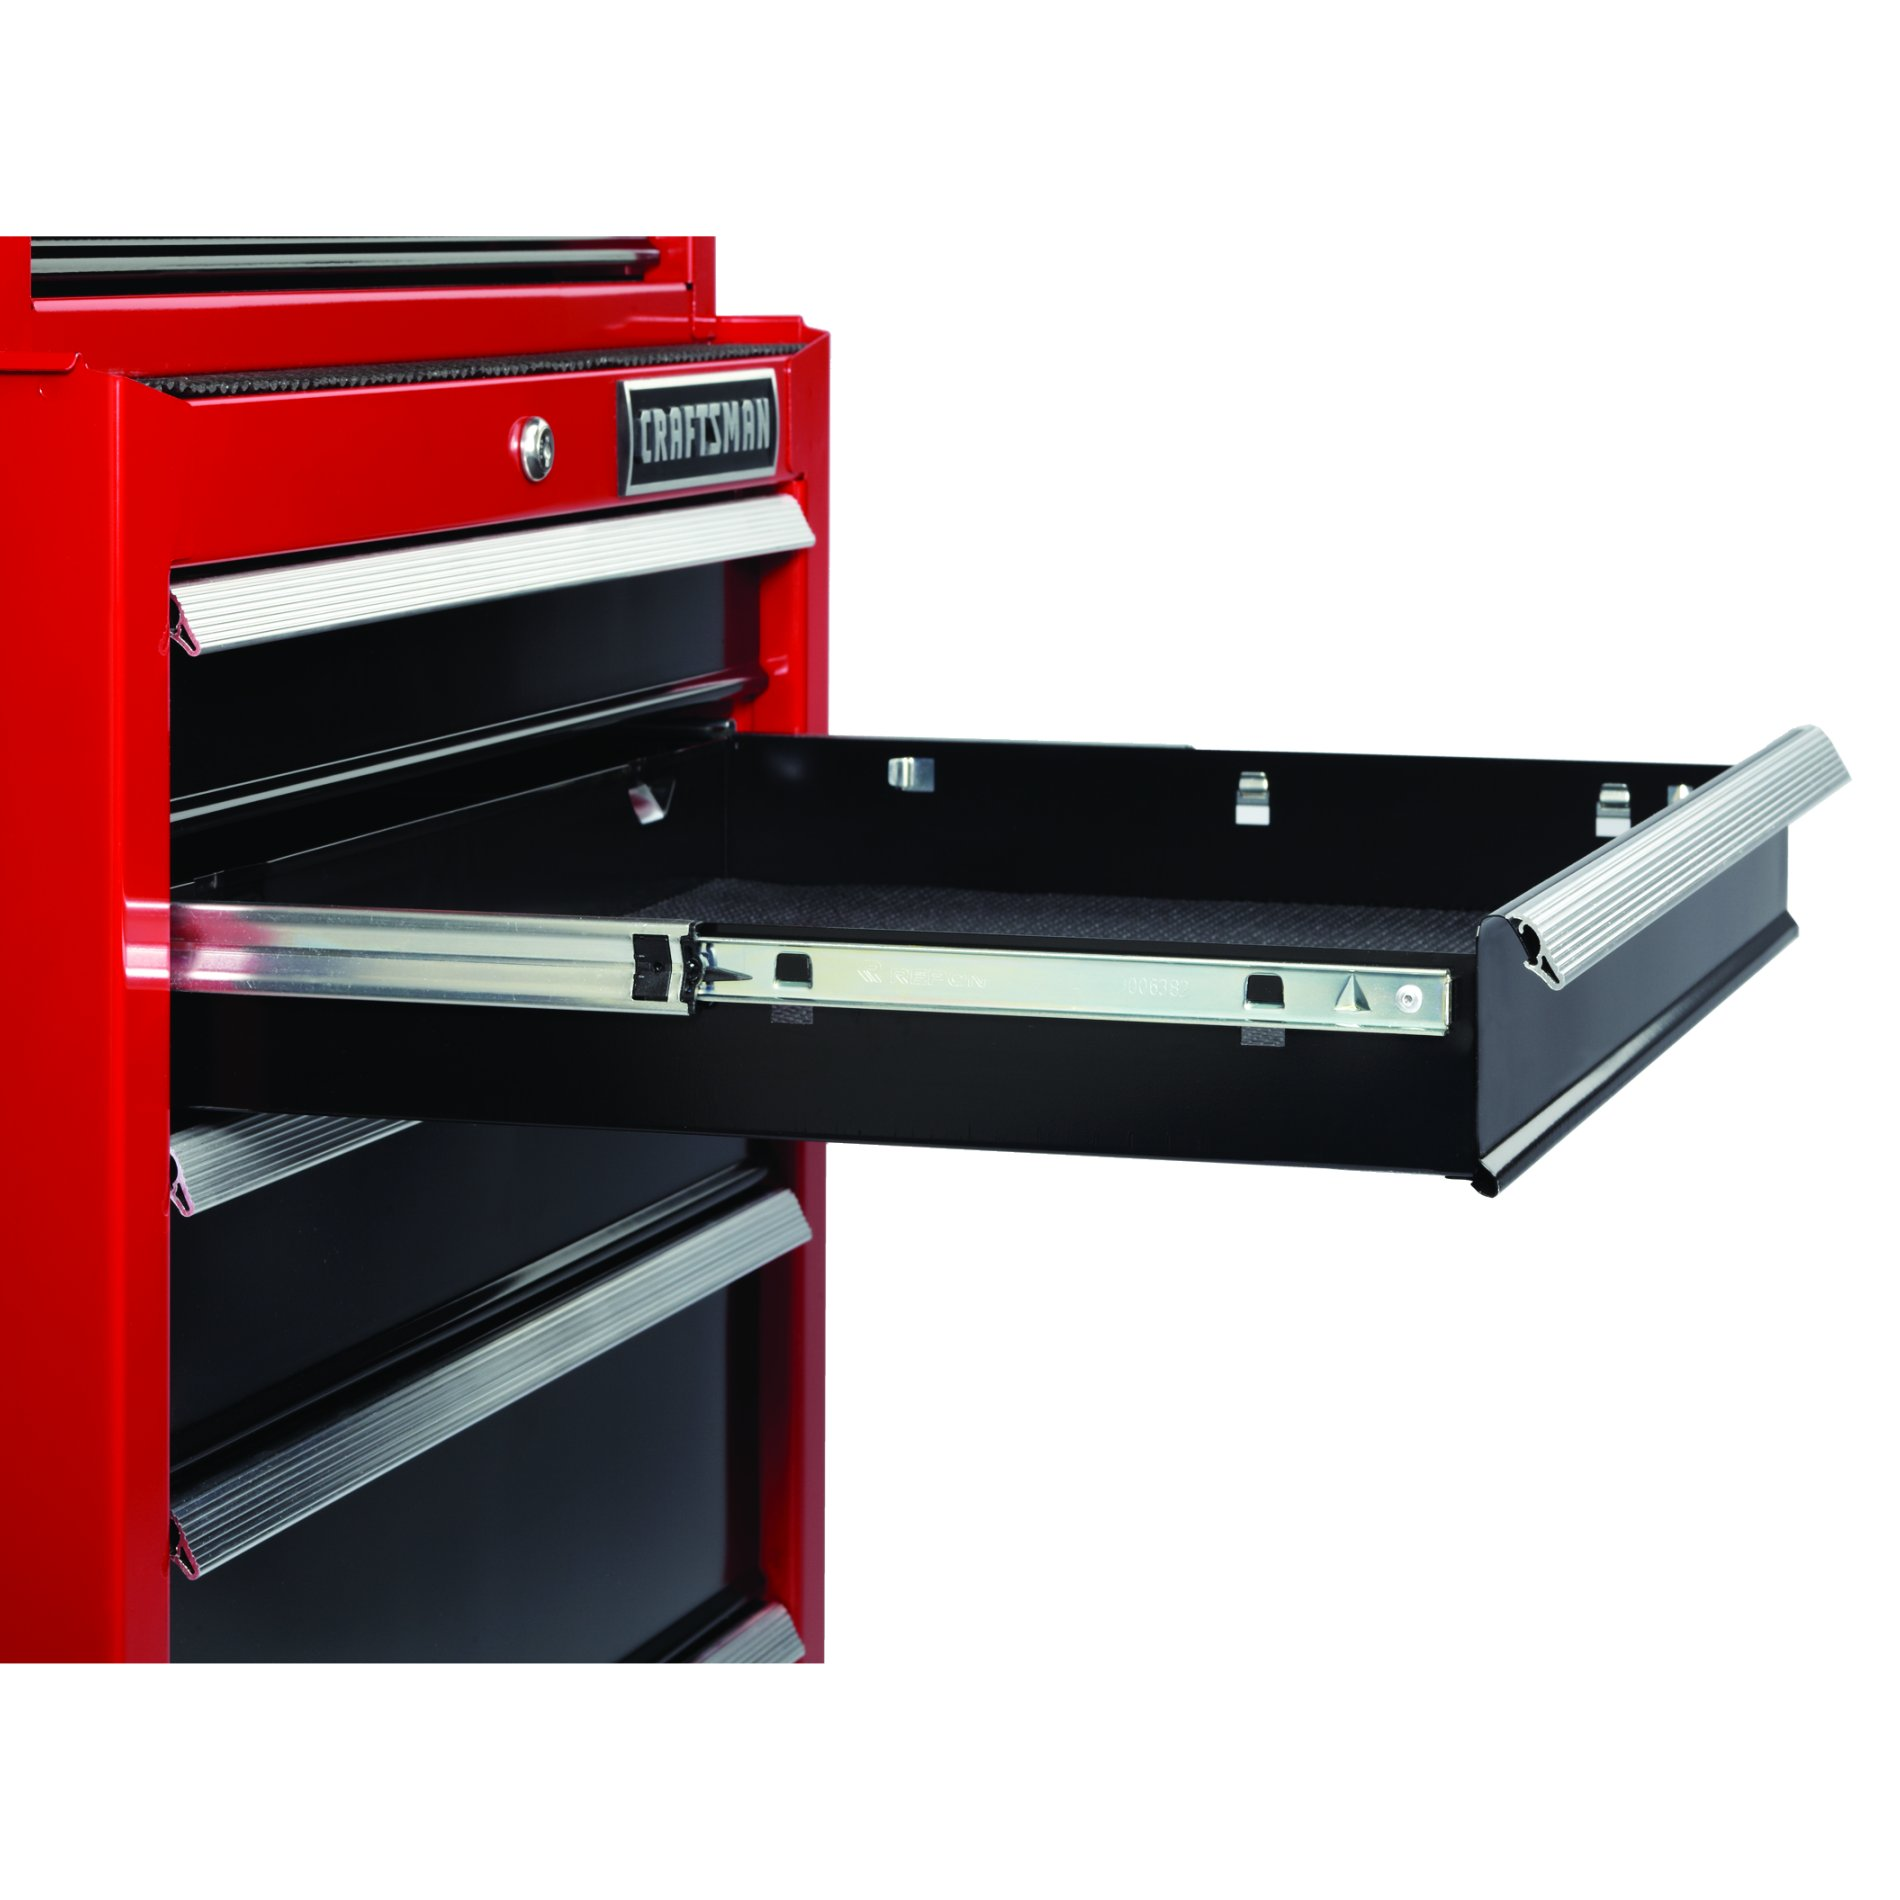 Craftsman 7-Drawer Ball-Bearing 12-Inch Deep Top Chest